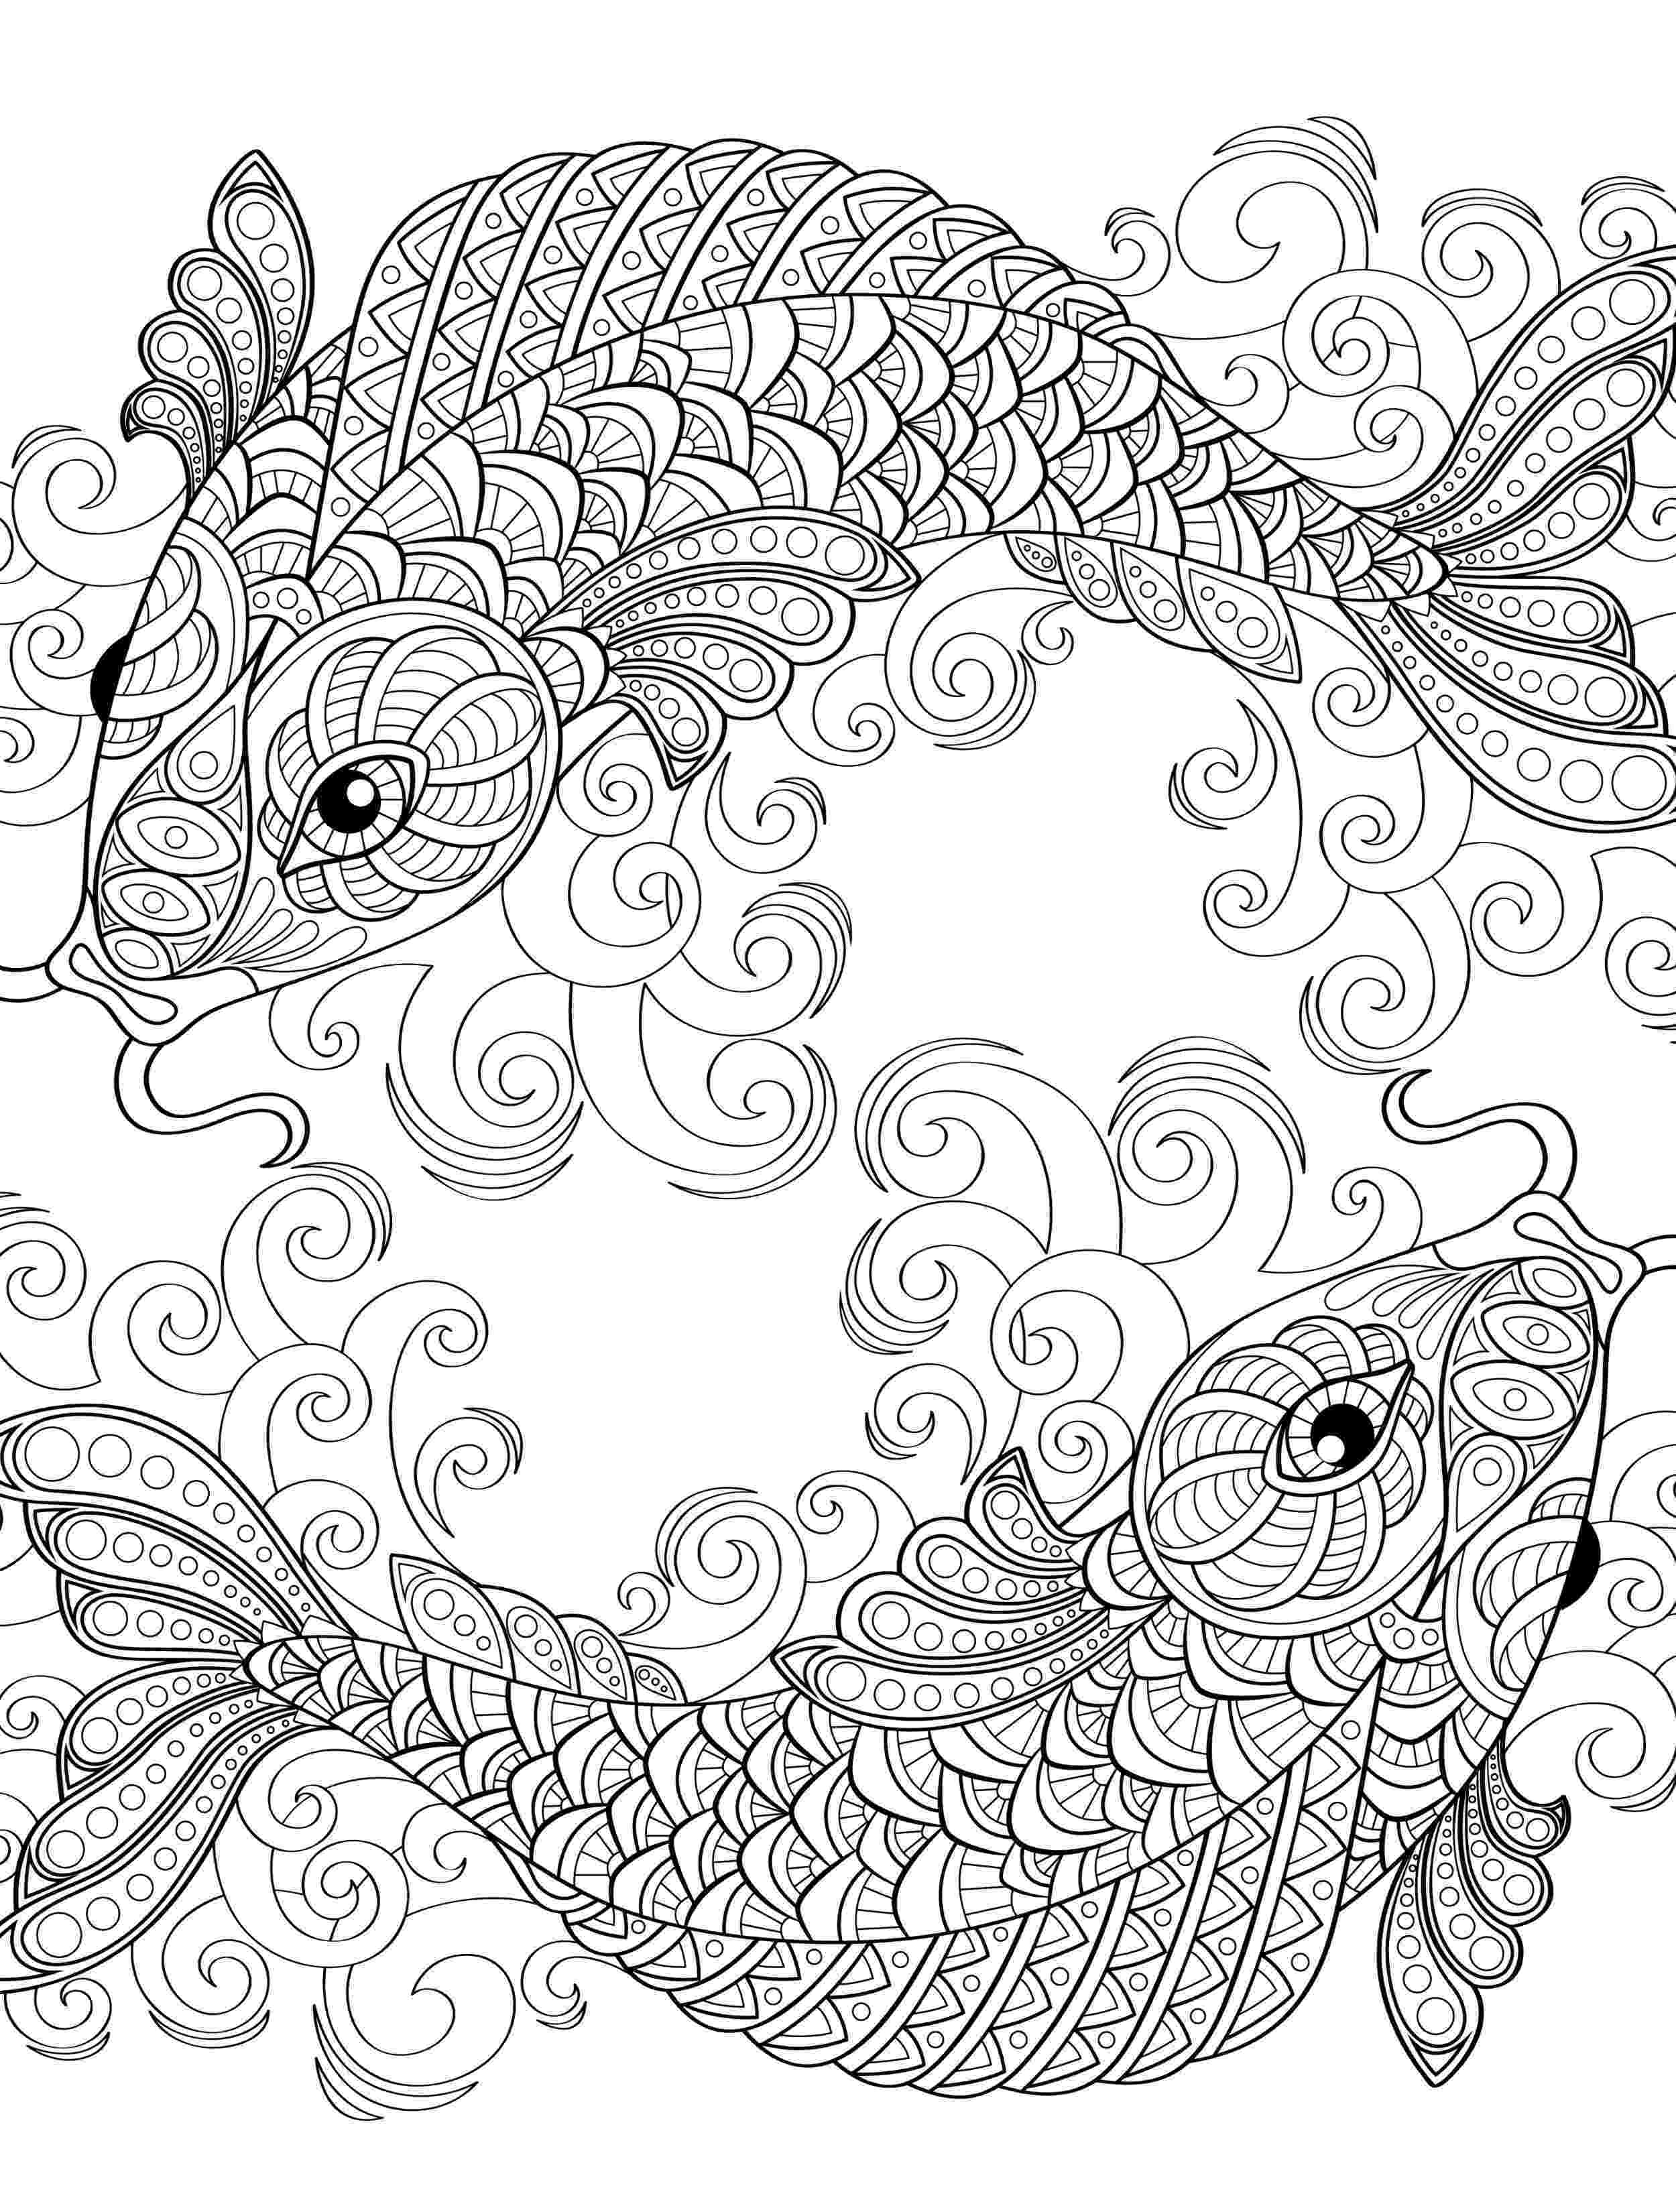 fish coloring pages for adults fish details fishes adult coloring pages coloring pages adults fish for